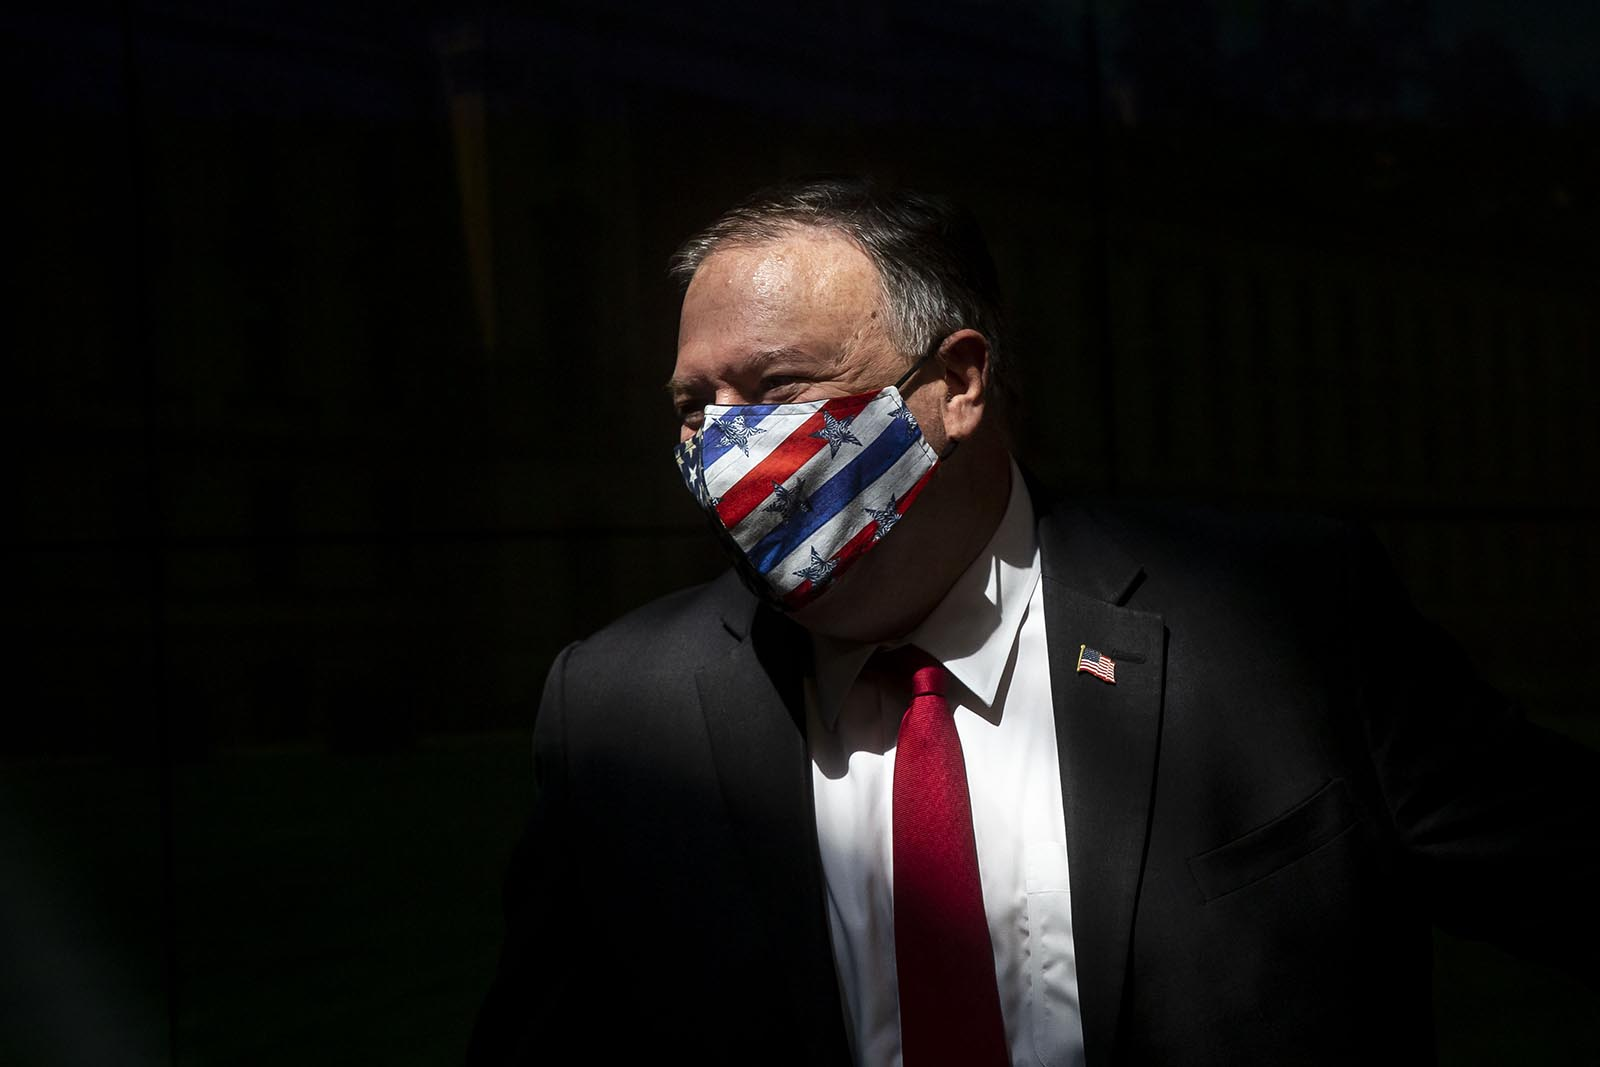 Secretary of State Mike Pompeo wears a mask at a press conference on August 12, in Prague, Czech Republic.